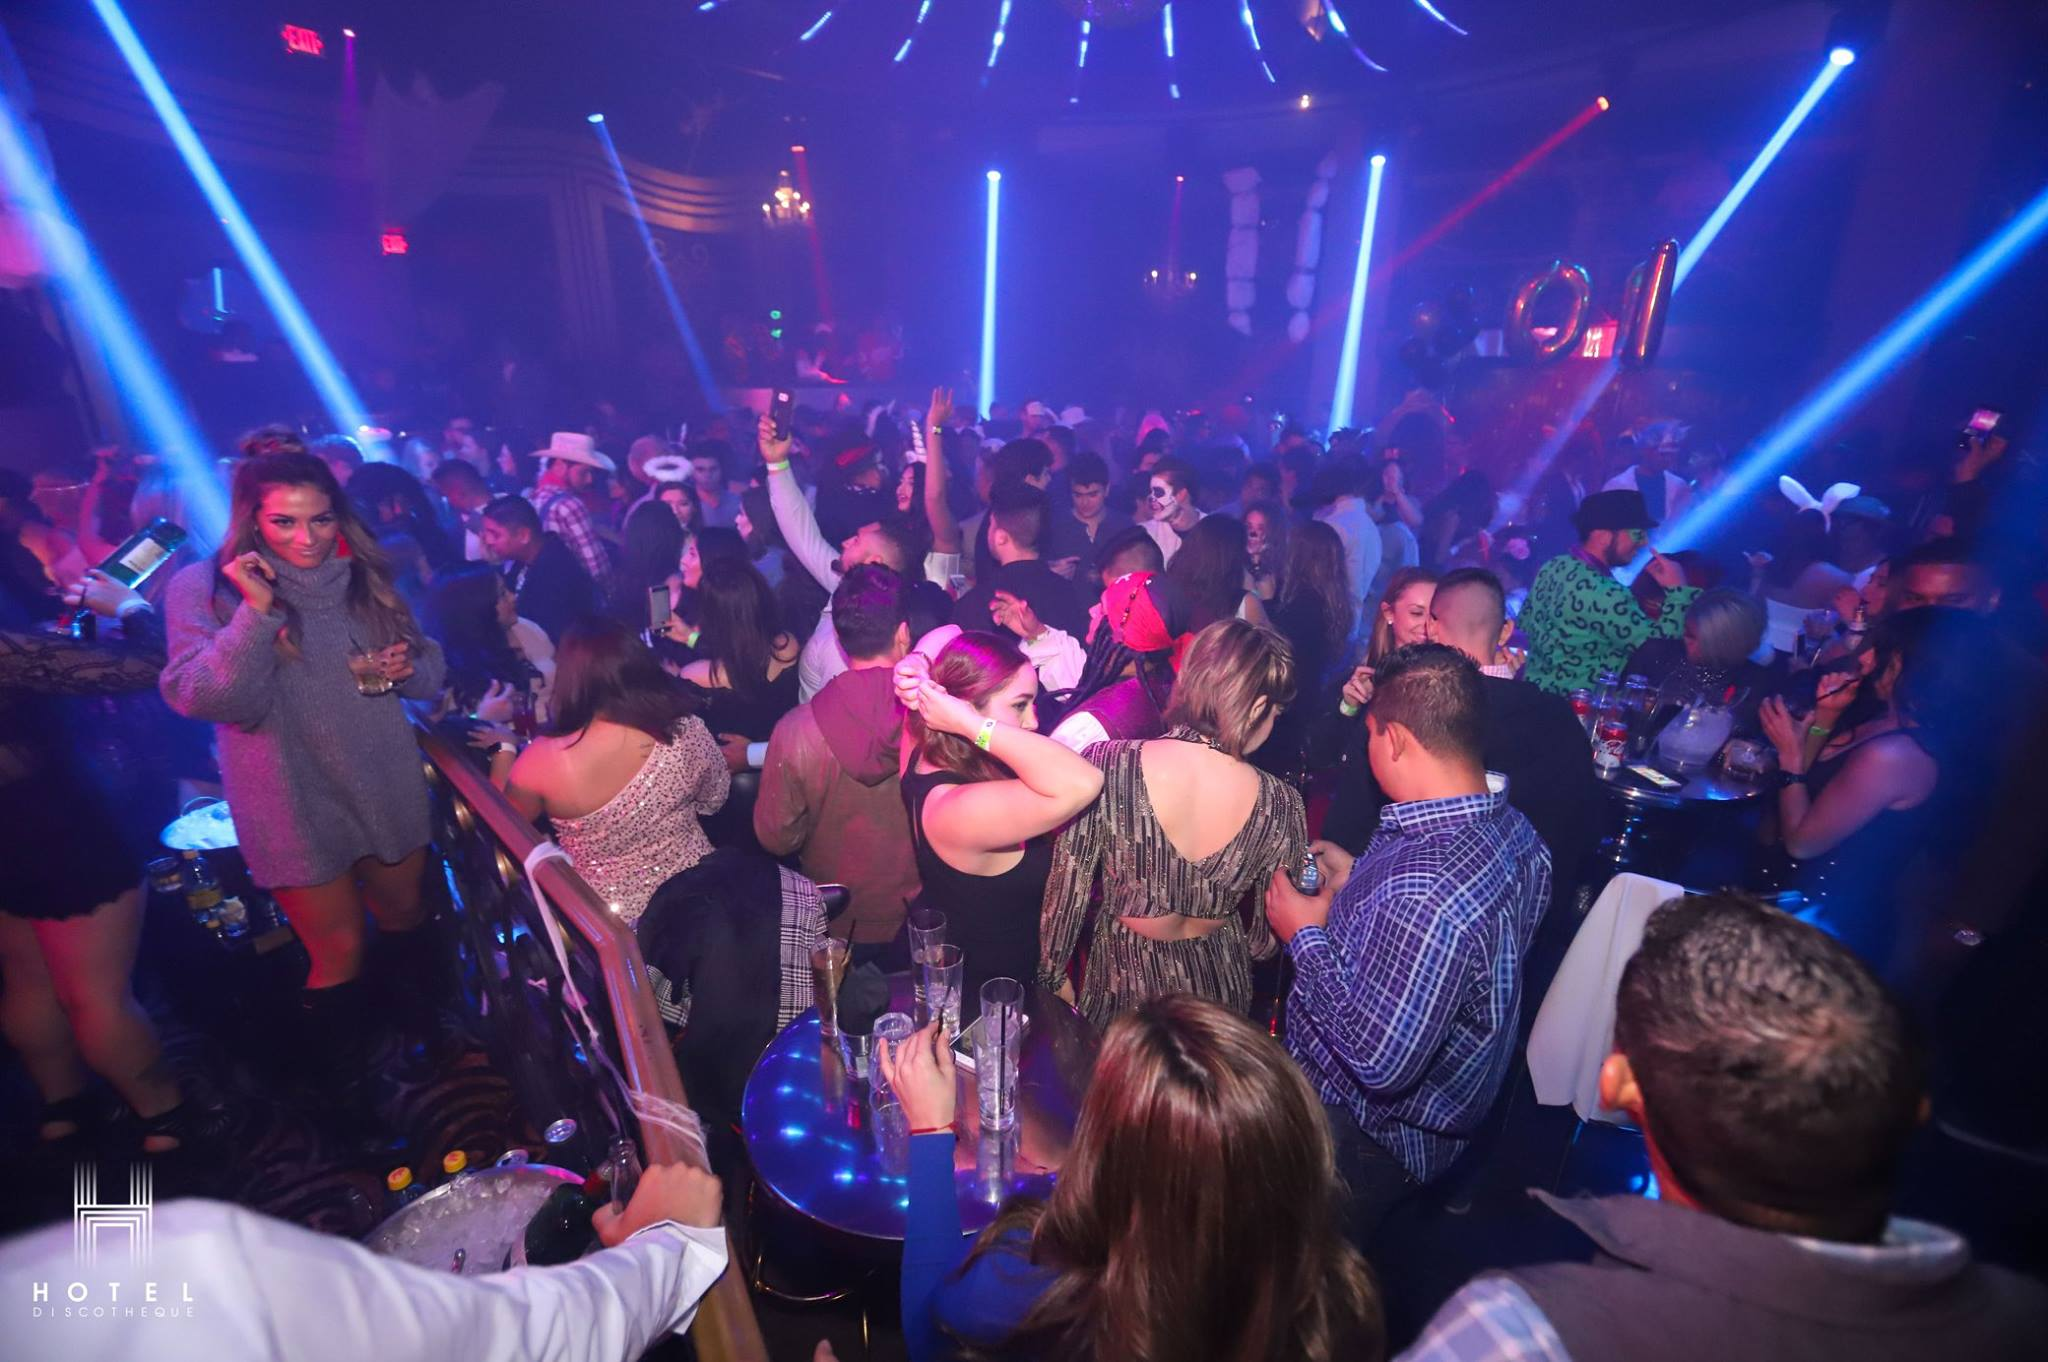 Latin Dance Clubs Near Me Hotel Discotheque